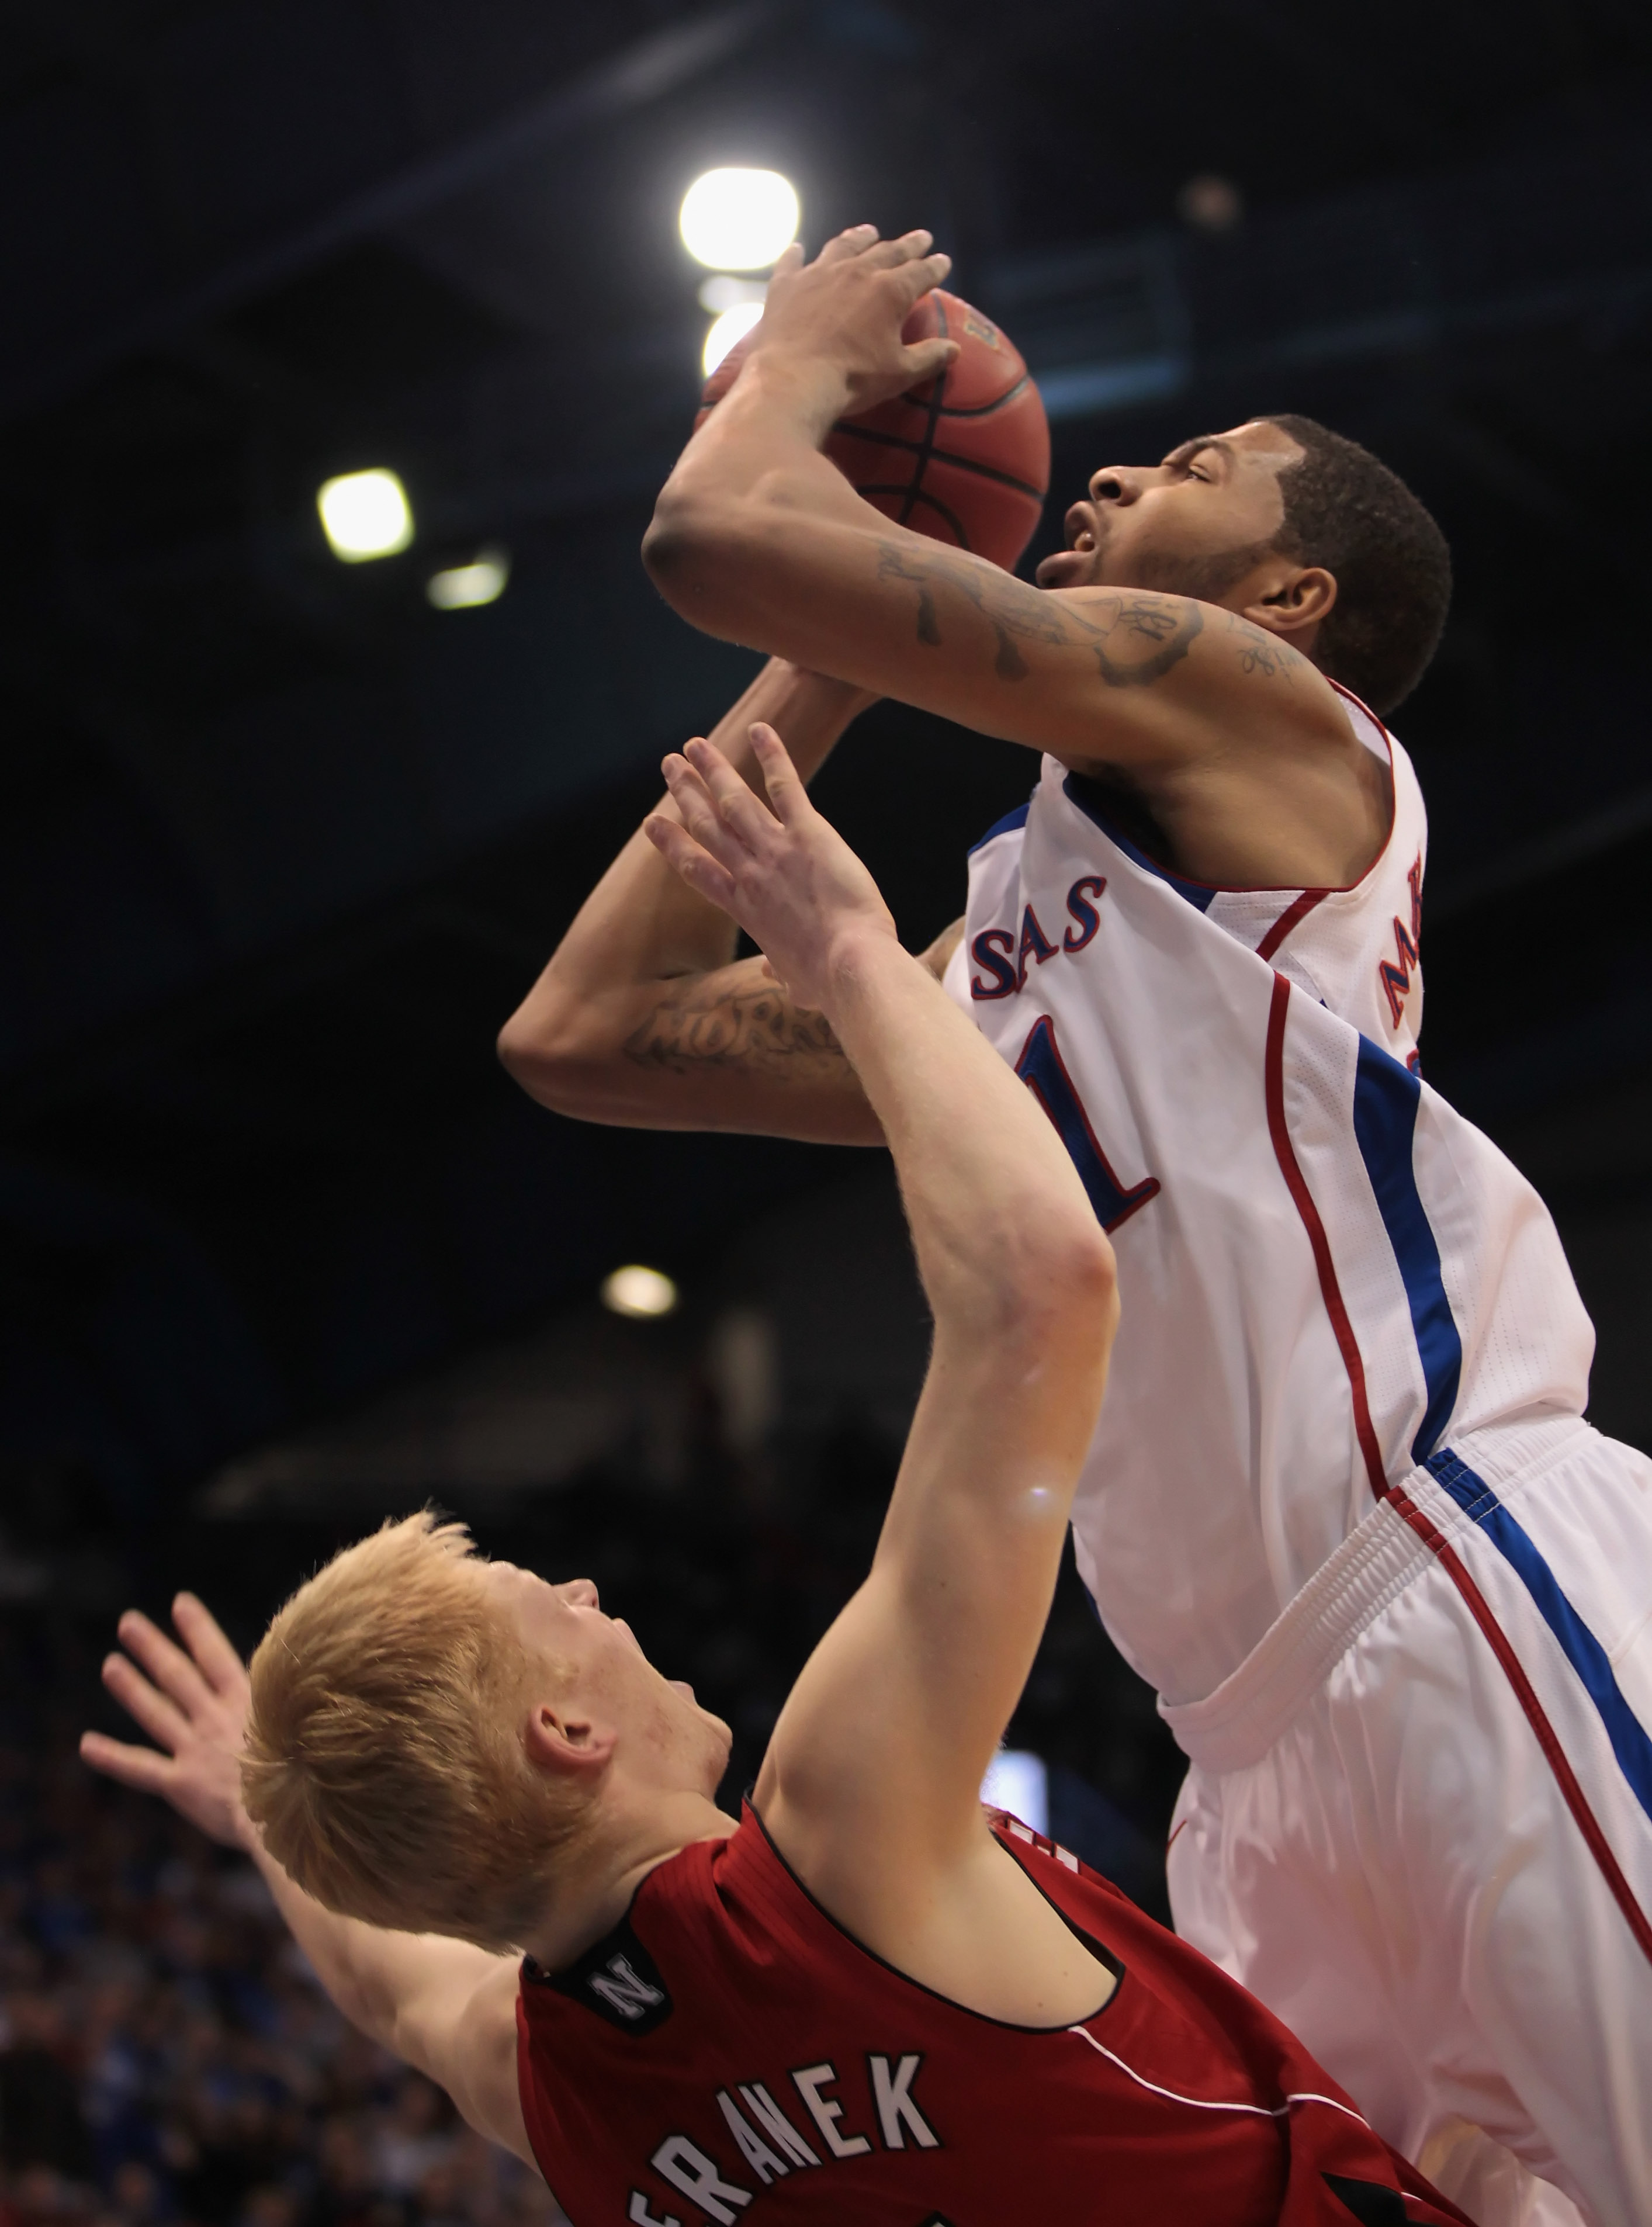 LAWRENCE, KS - JANUARY 15:  Markieff Morris #21 of the Kansas Jayhawks is fouled by Drake Beranek #31 of the Nebraska Cornhuskers during the game on January 15, 2011 at Allen Fieldhouse in Lawrence, Kansas.  (Photo by Jamie Squire/Getty Images)